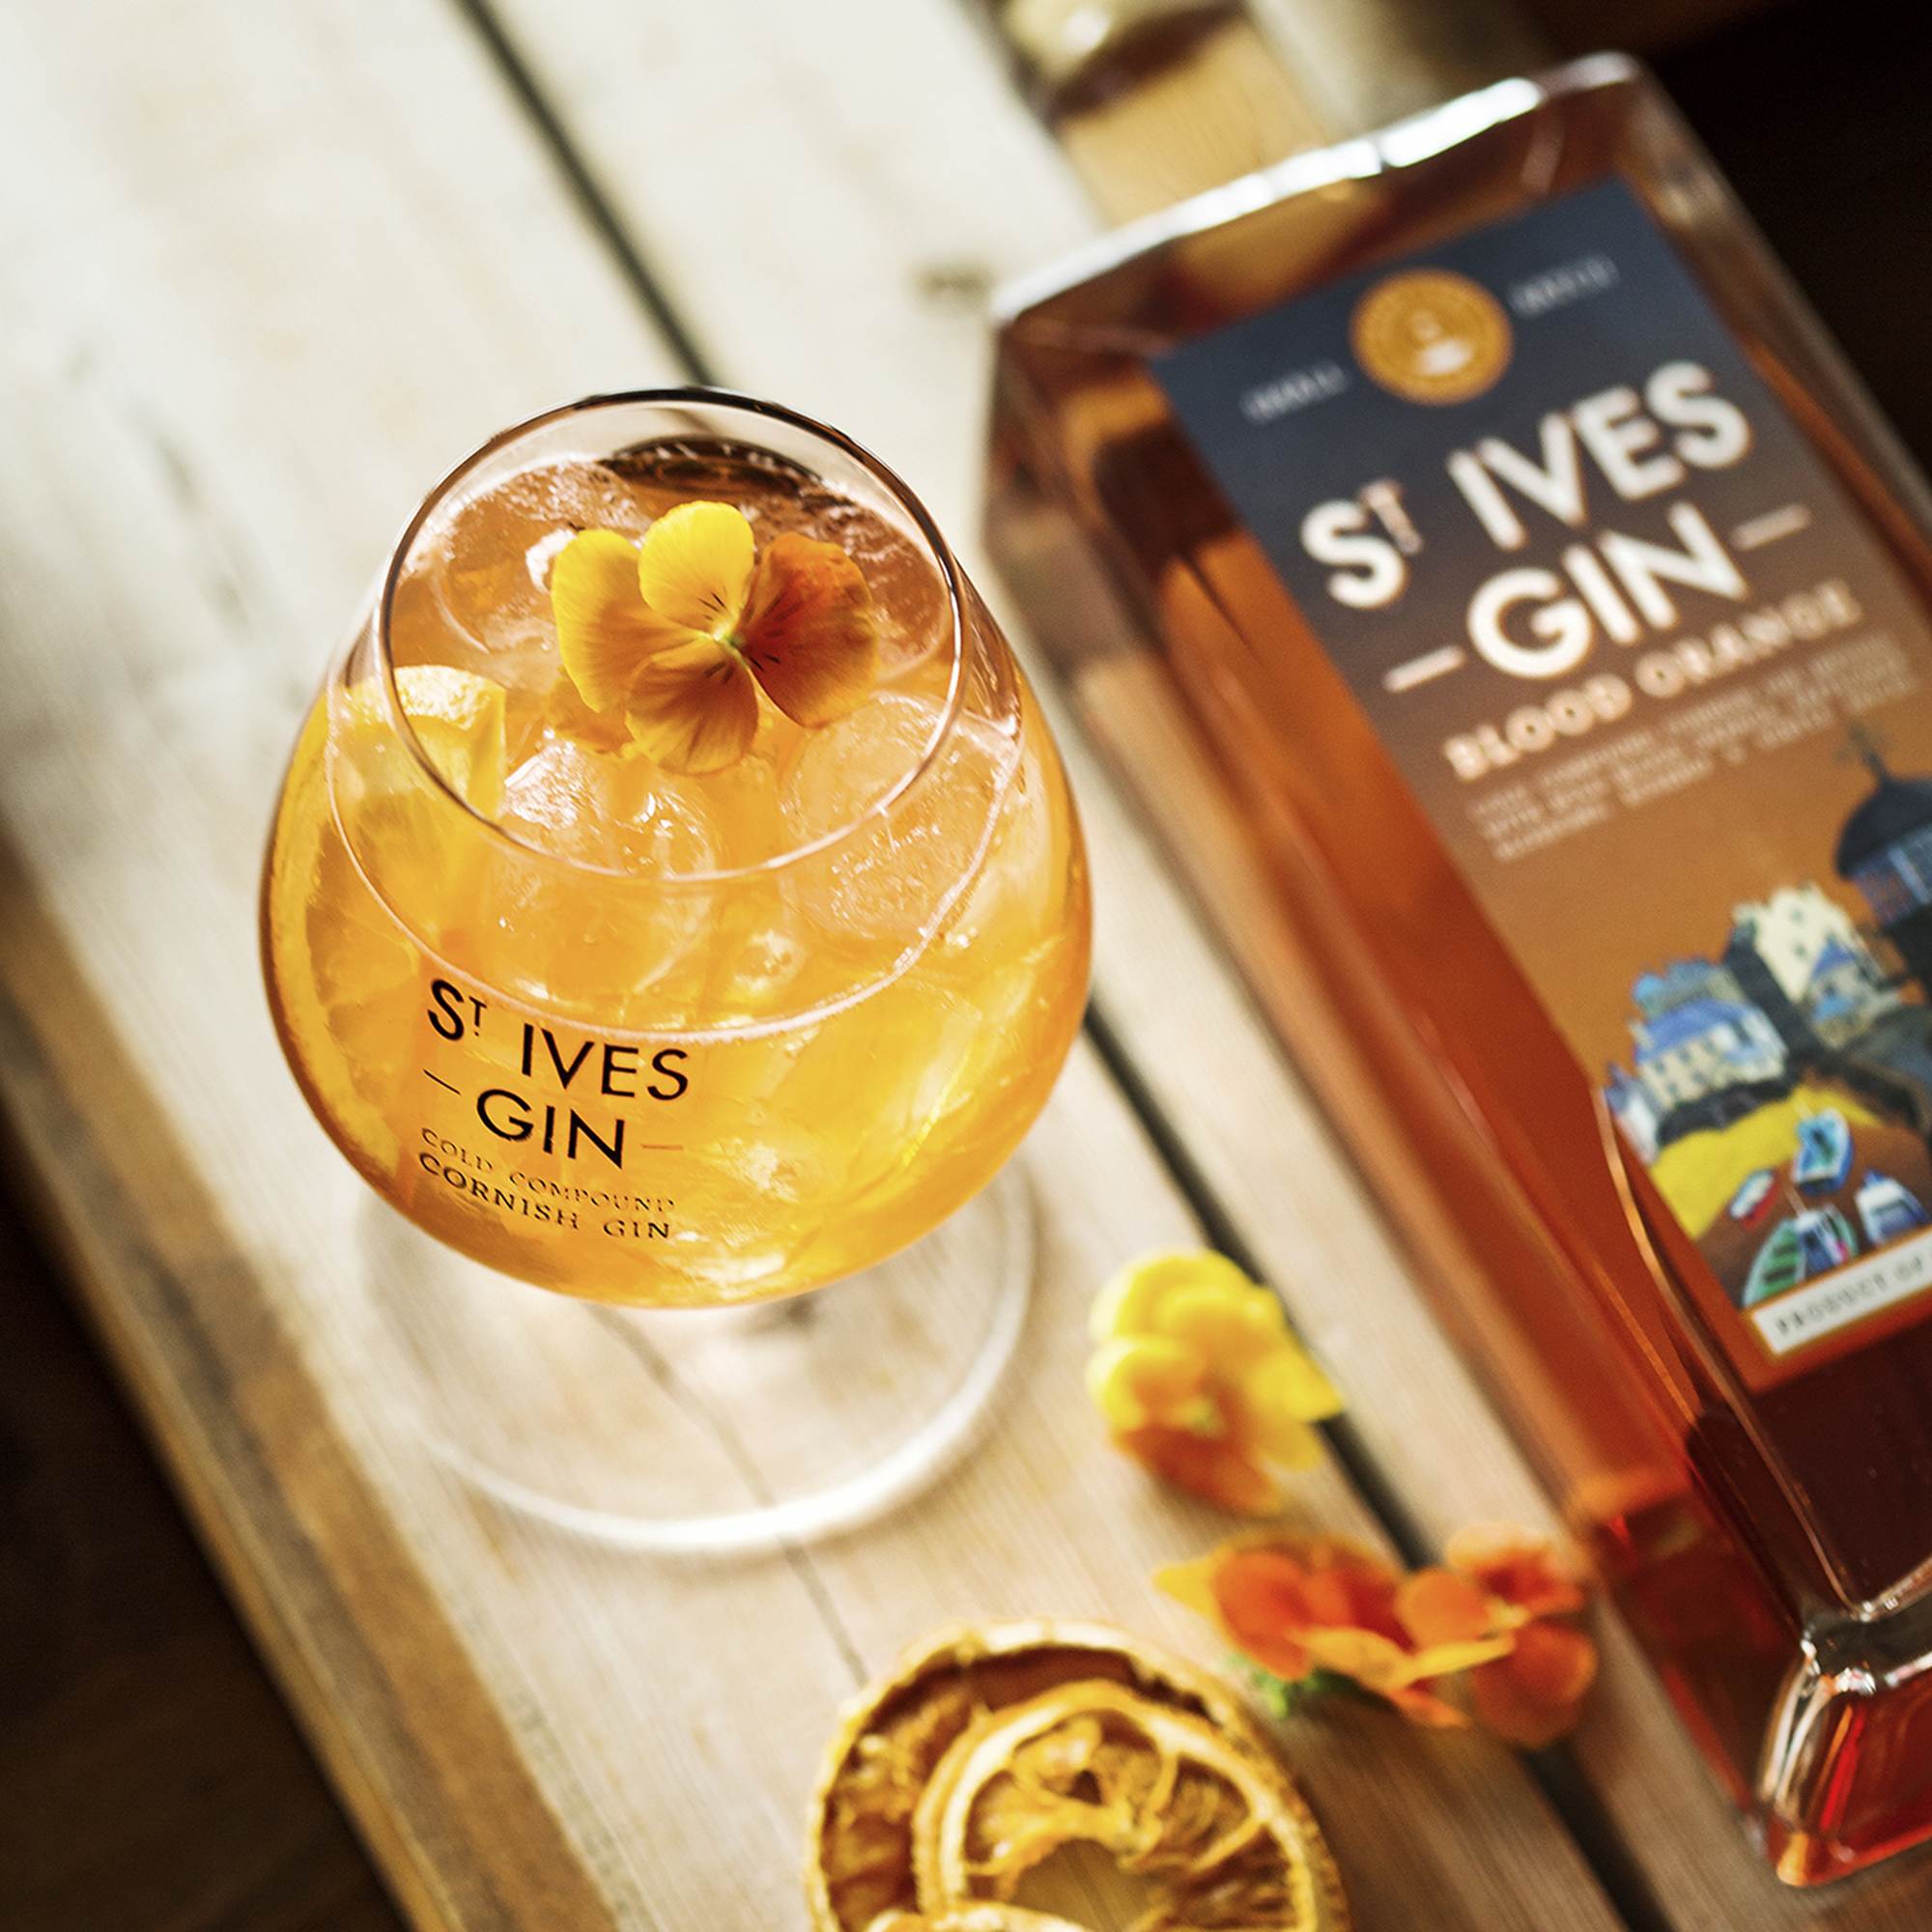 St Ives Blood Orange Gin Signature Gin & Tonic Serve